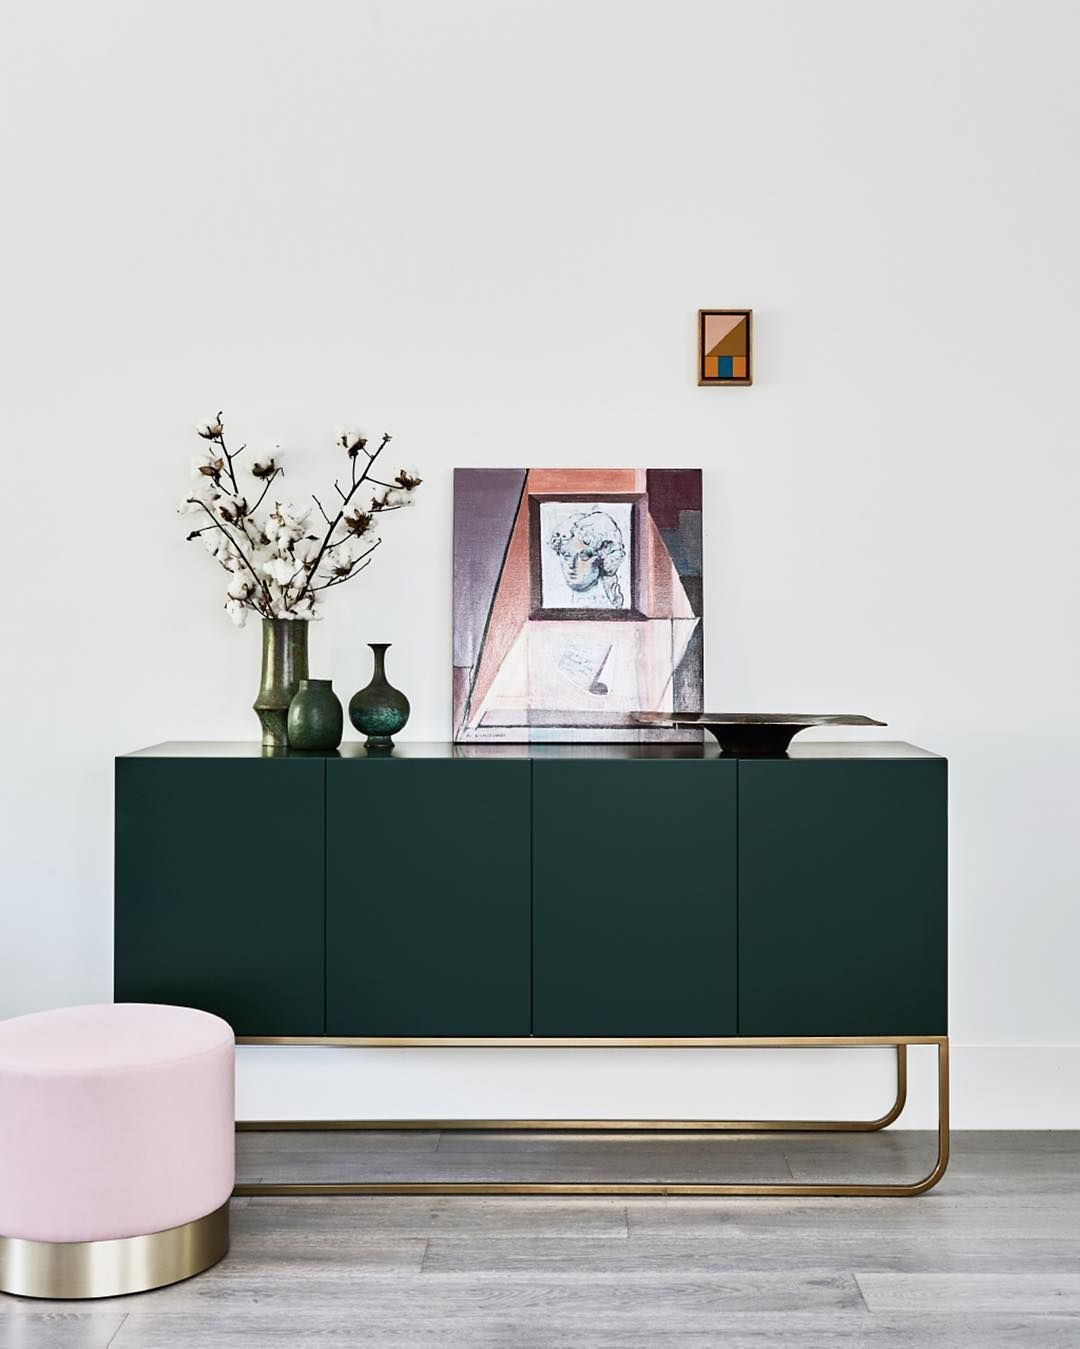 Hallway cabinet decor  feina kumode  Design  Pinterest  Tgif Inspiration and Interiors